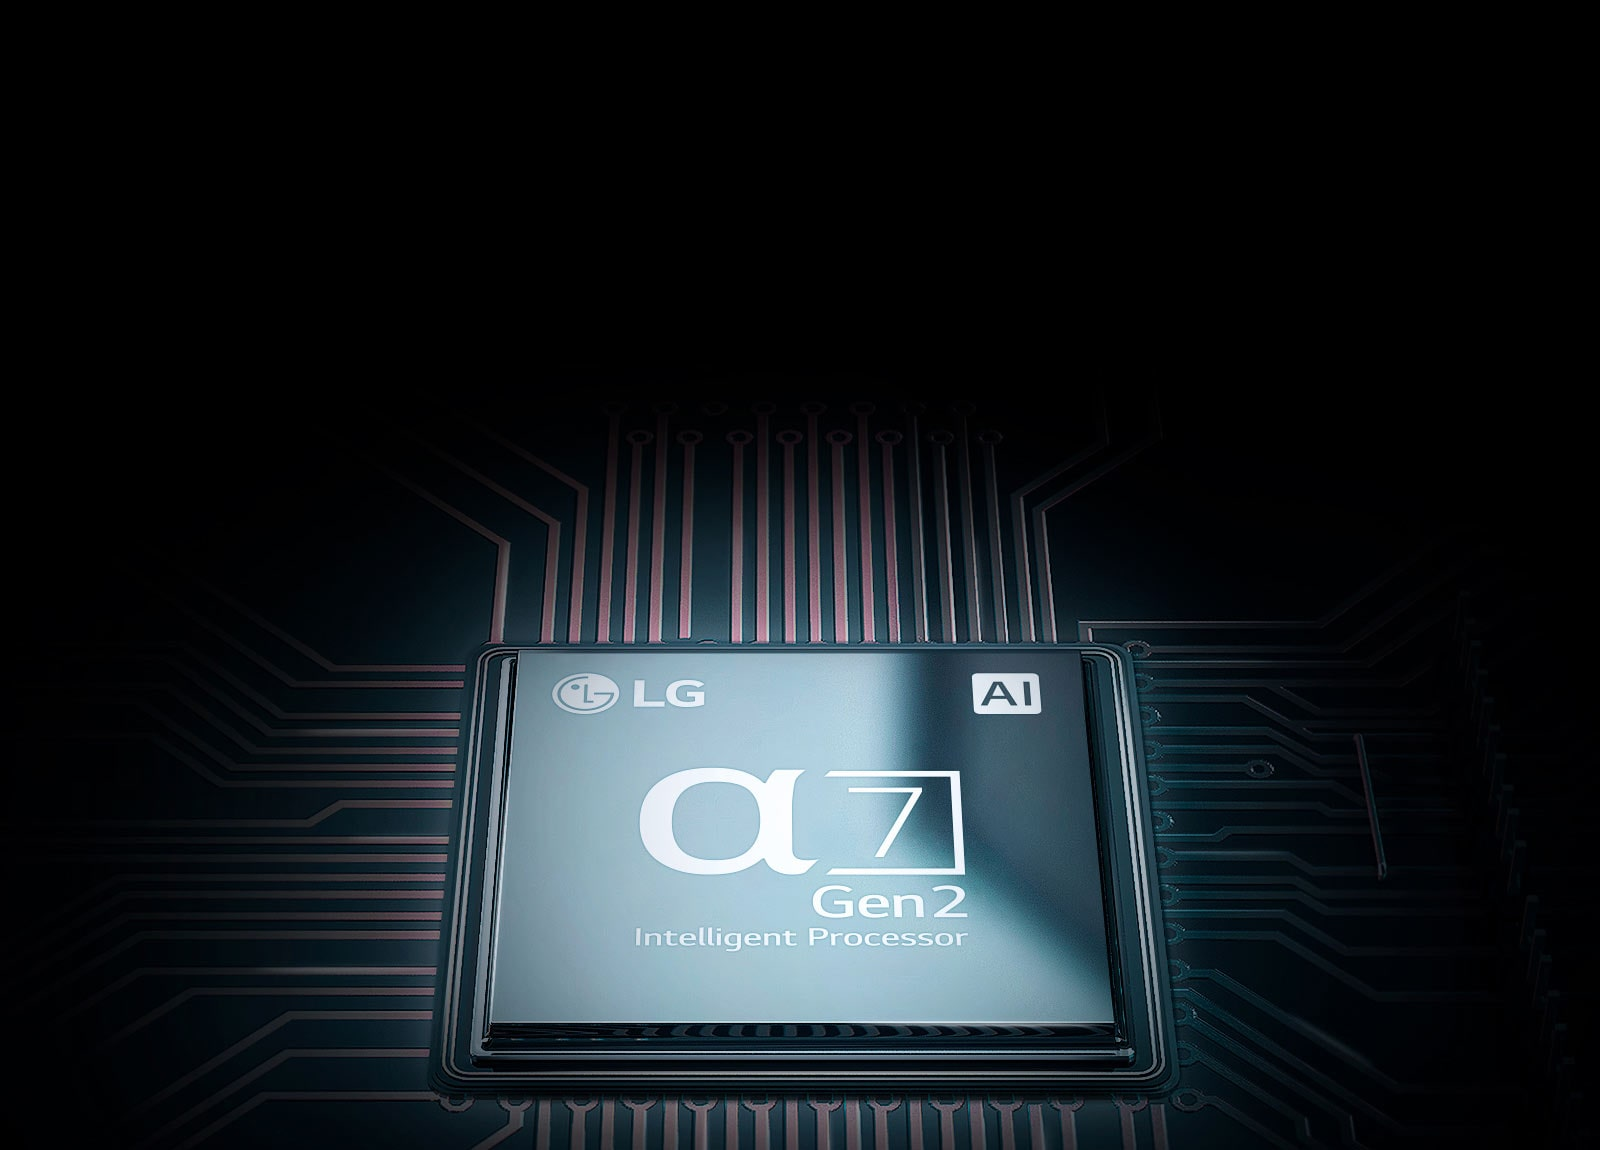 LG α7 Intelligent Processor NanoCell TV